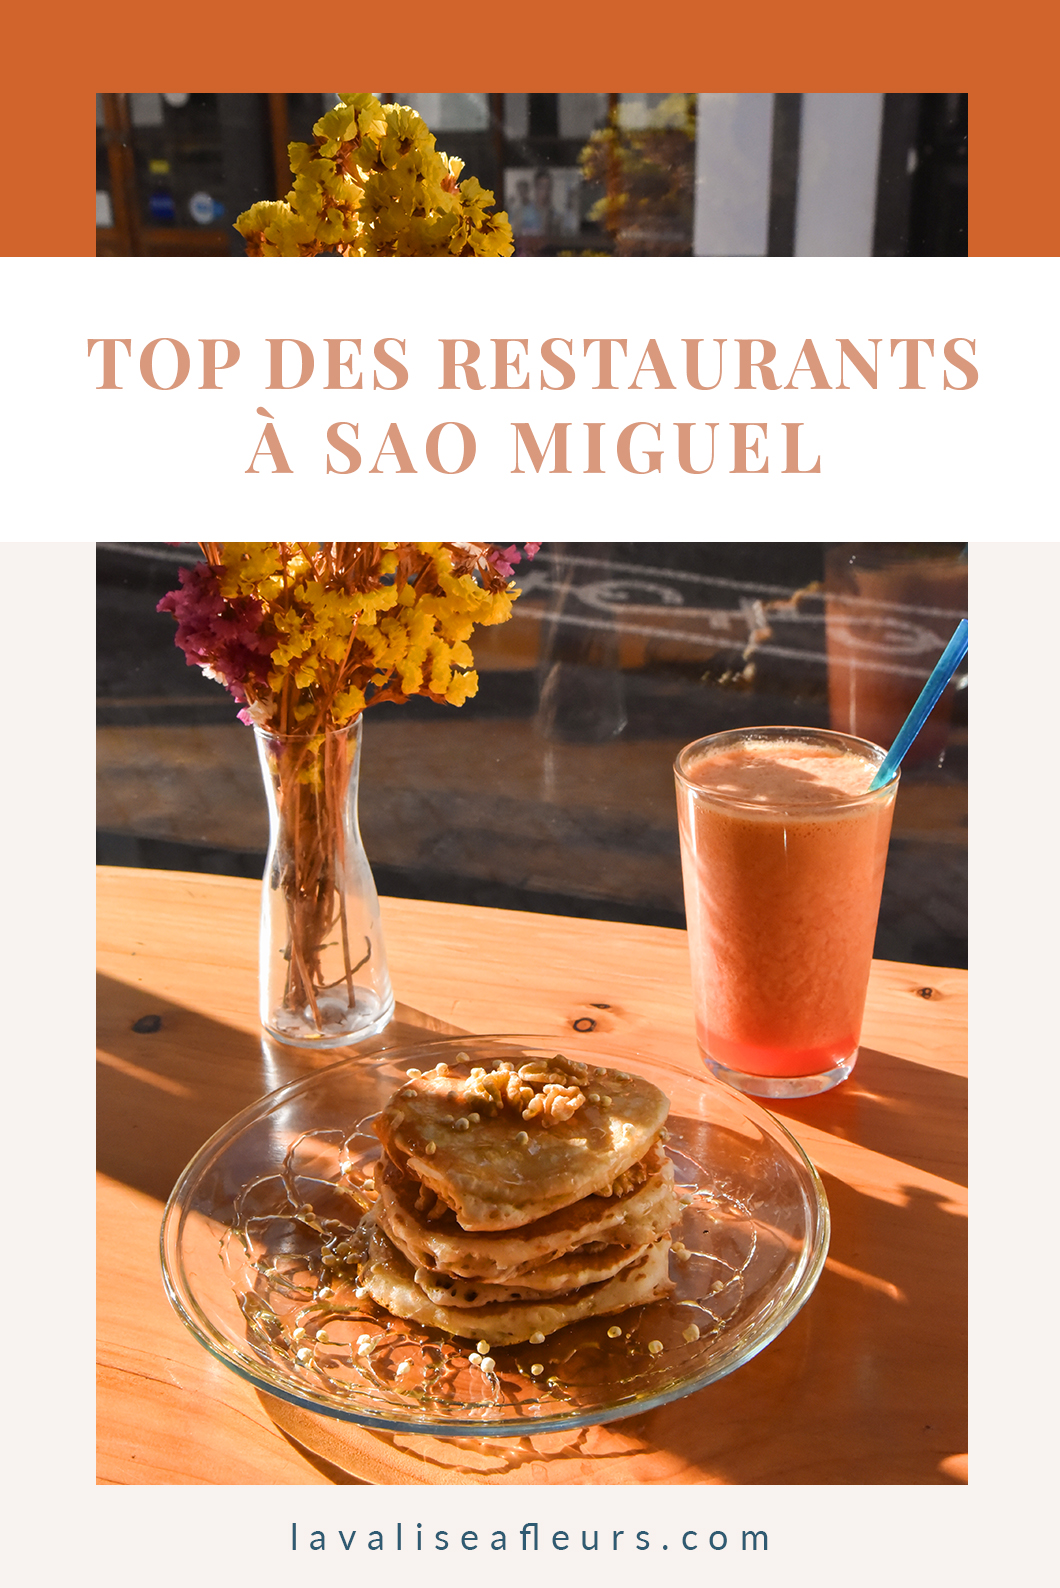 Top des restaurants à Sao Miguel